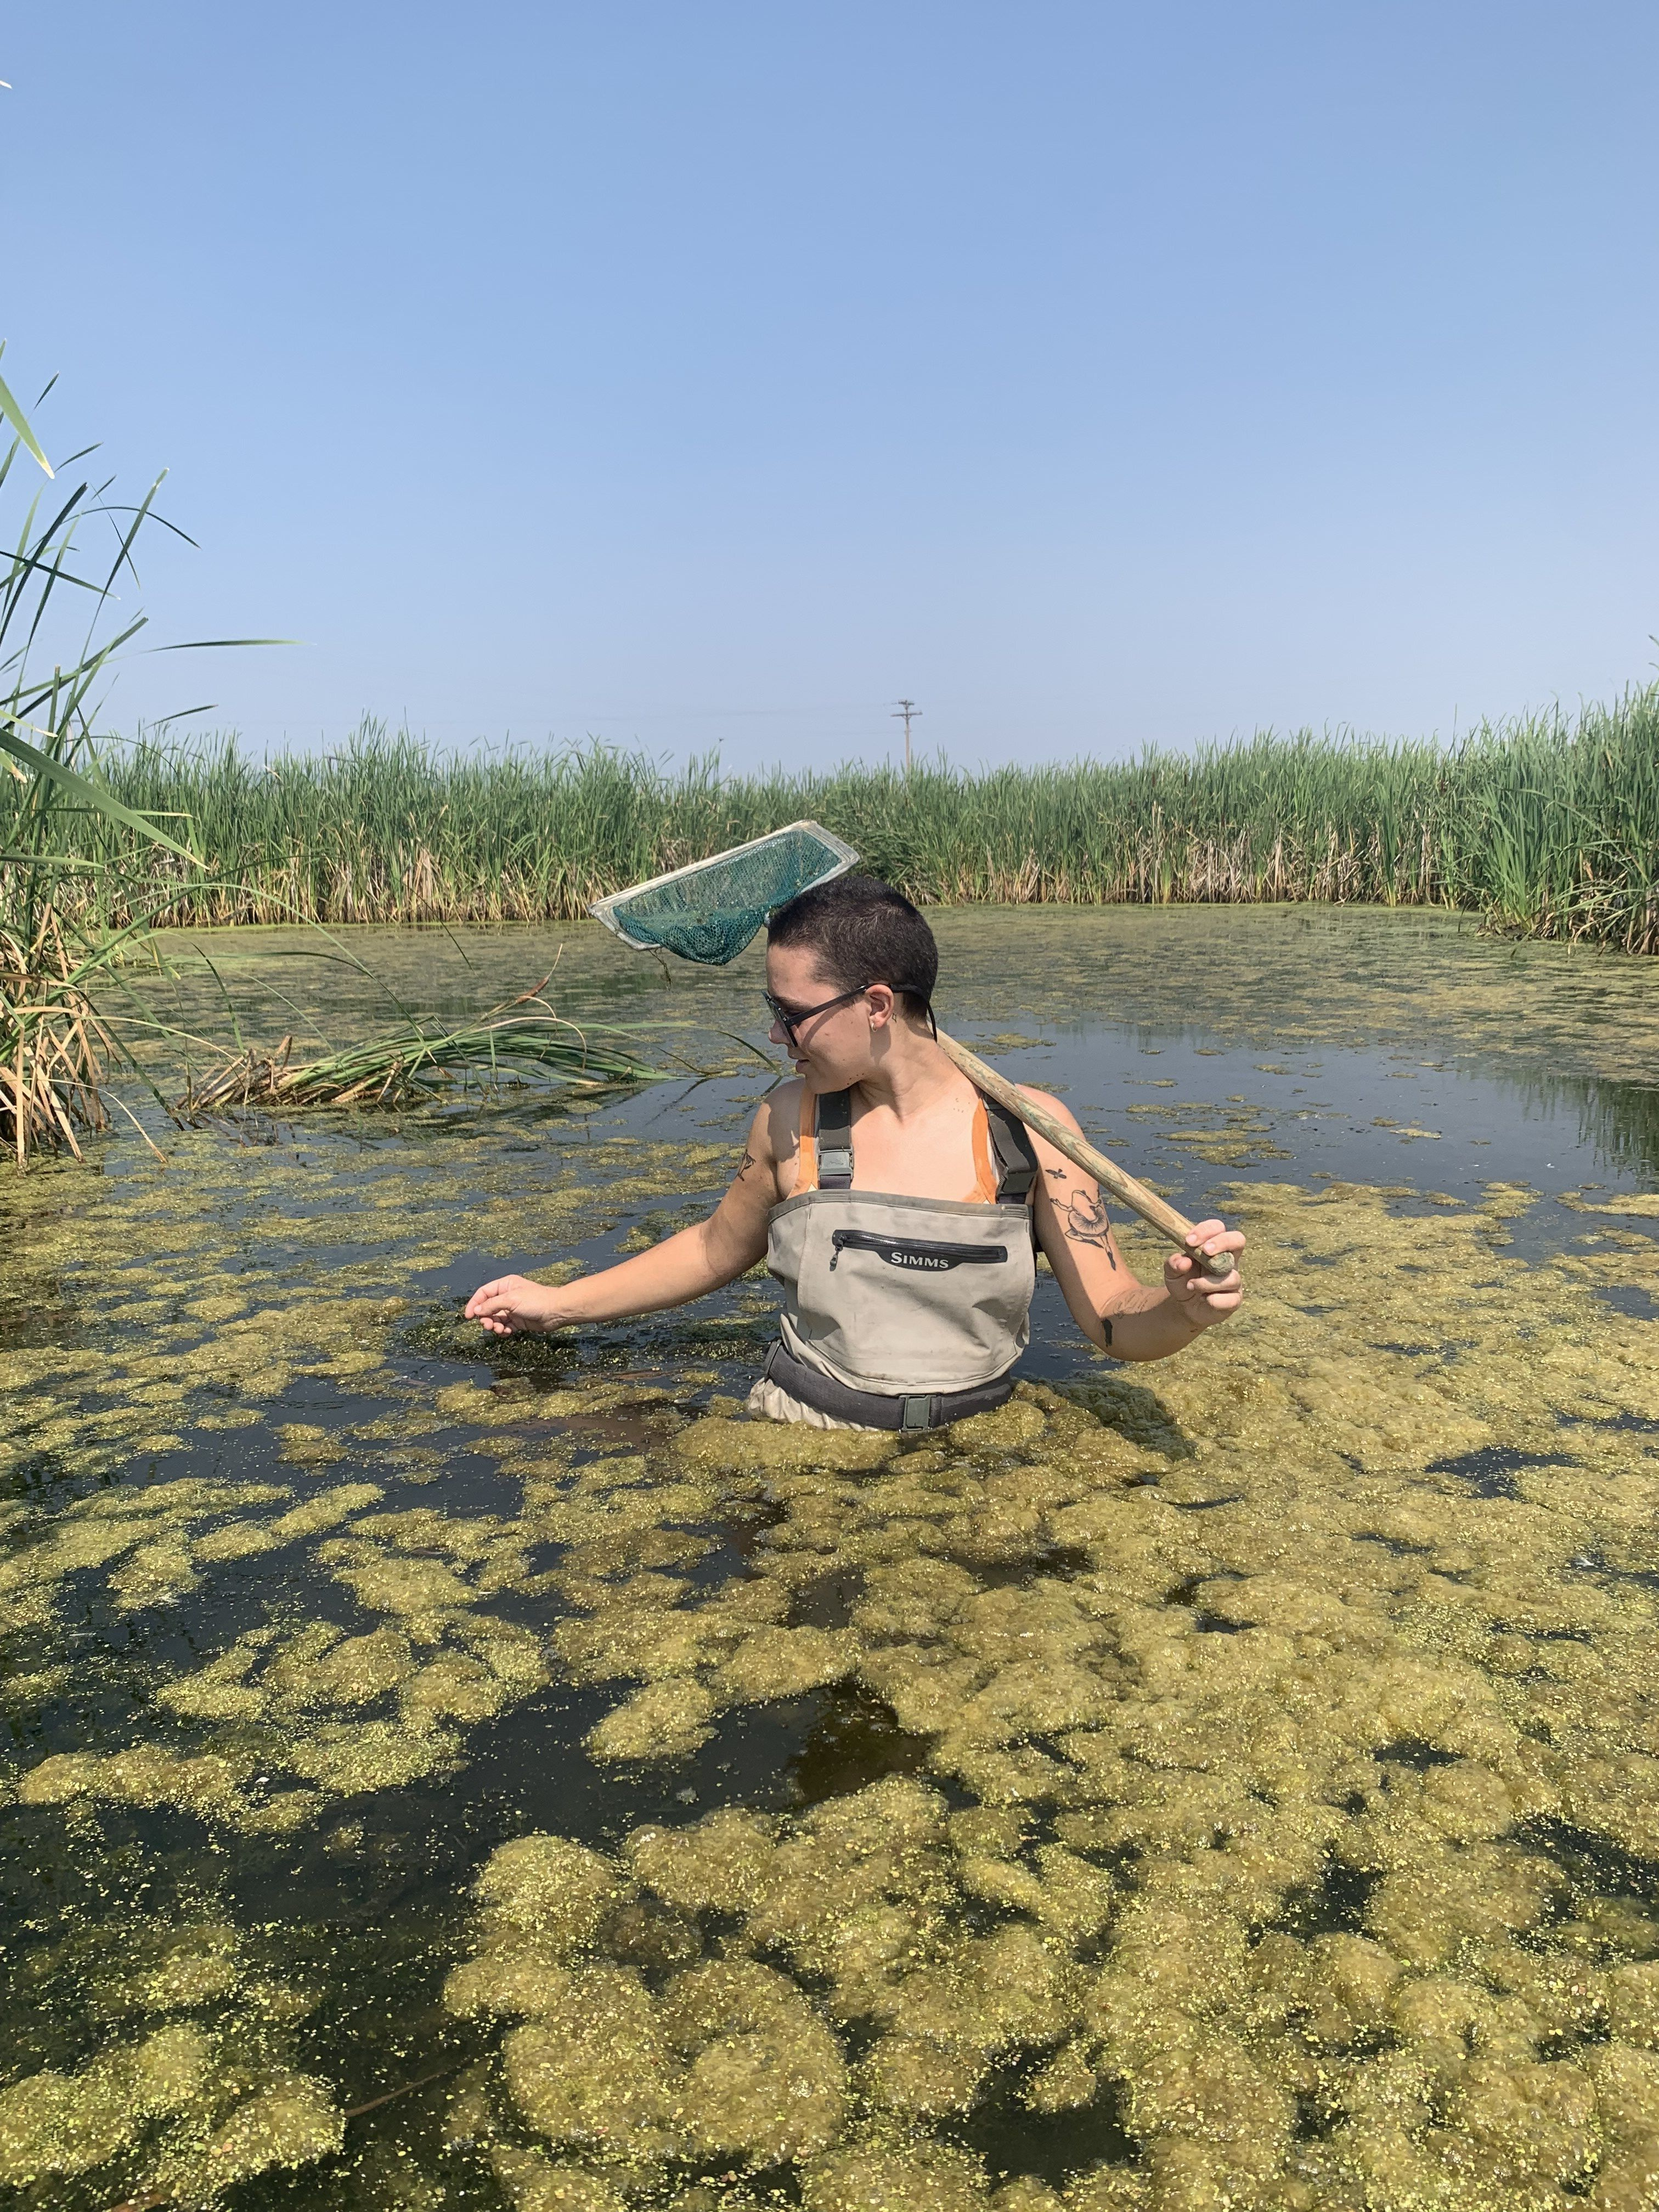 Clo wades in a algea covered pond looking for frogs